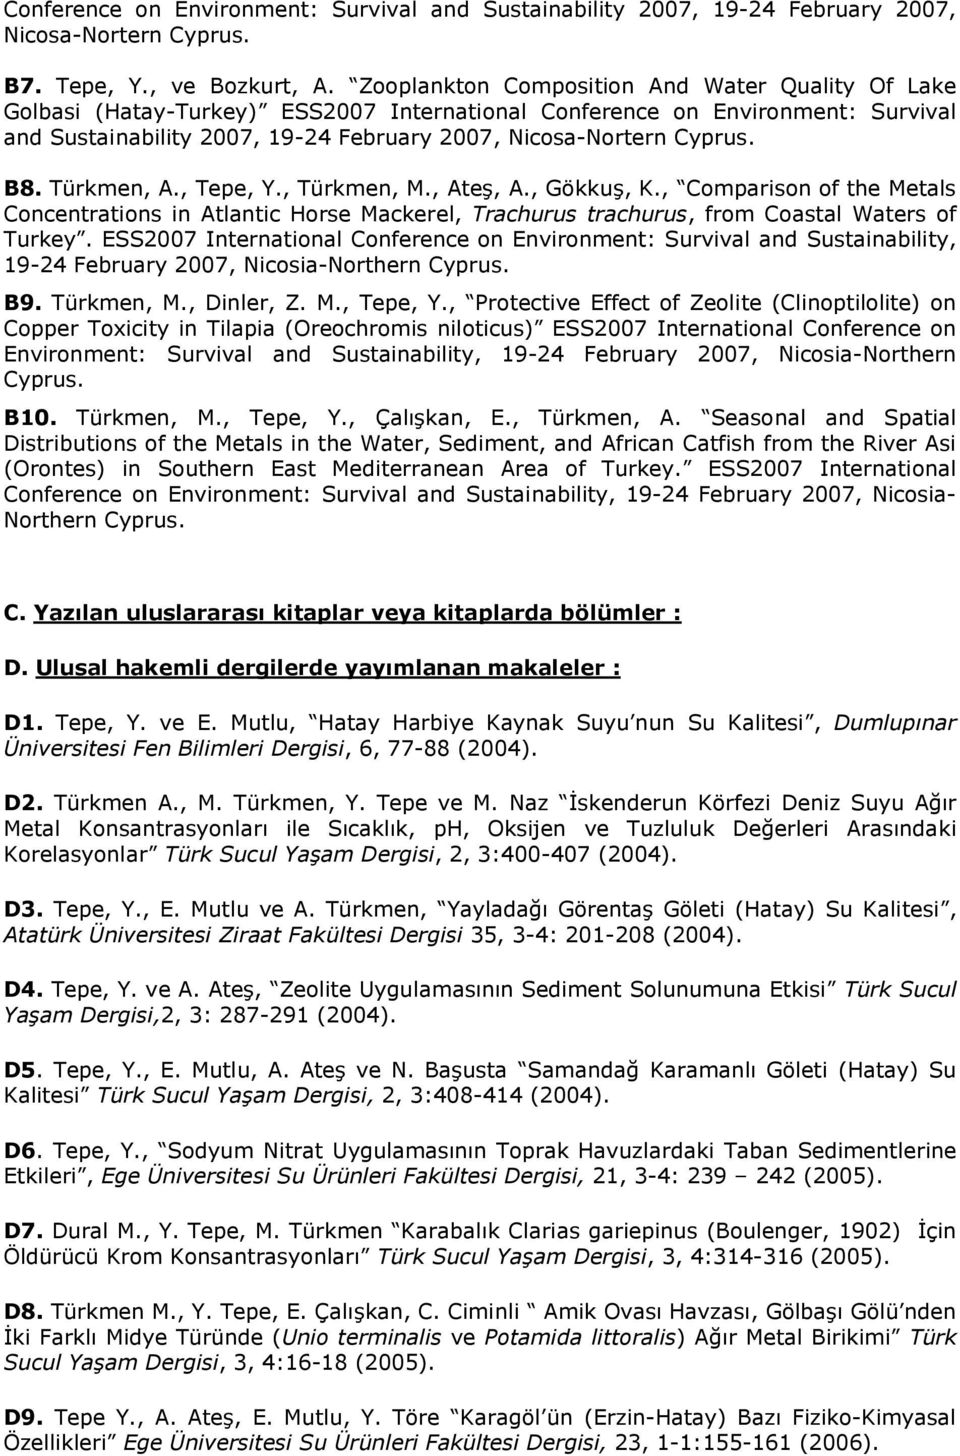 B8. Türkmen, A., Tepe, Y., Türkmen, M., Ateş, A., Gökkuş, K., Comparison of the Metals Concentrations in Atlantic Horse Mackerel, Trachurus trachurus, from Coastal Waters of Turkey.